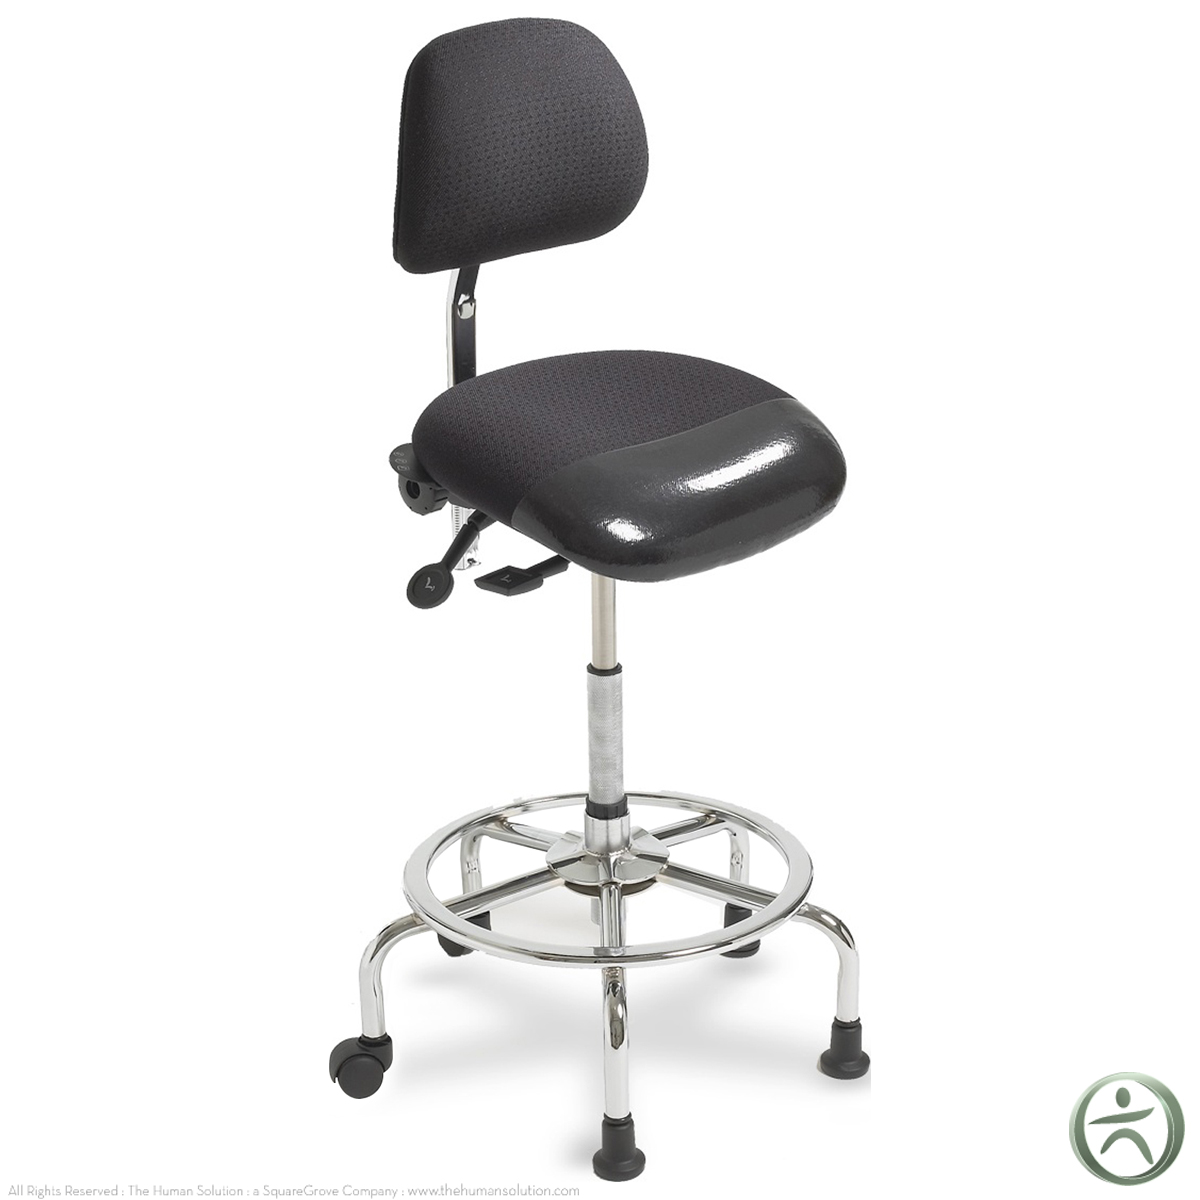 Ergocentric 3 In 1 Sit Stand Stool Shop Ergocentric Chairs